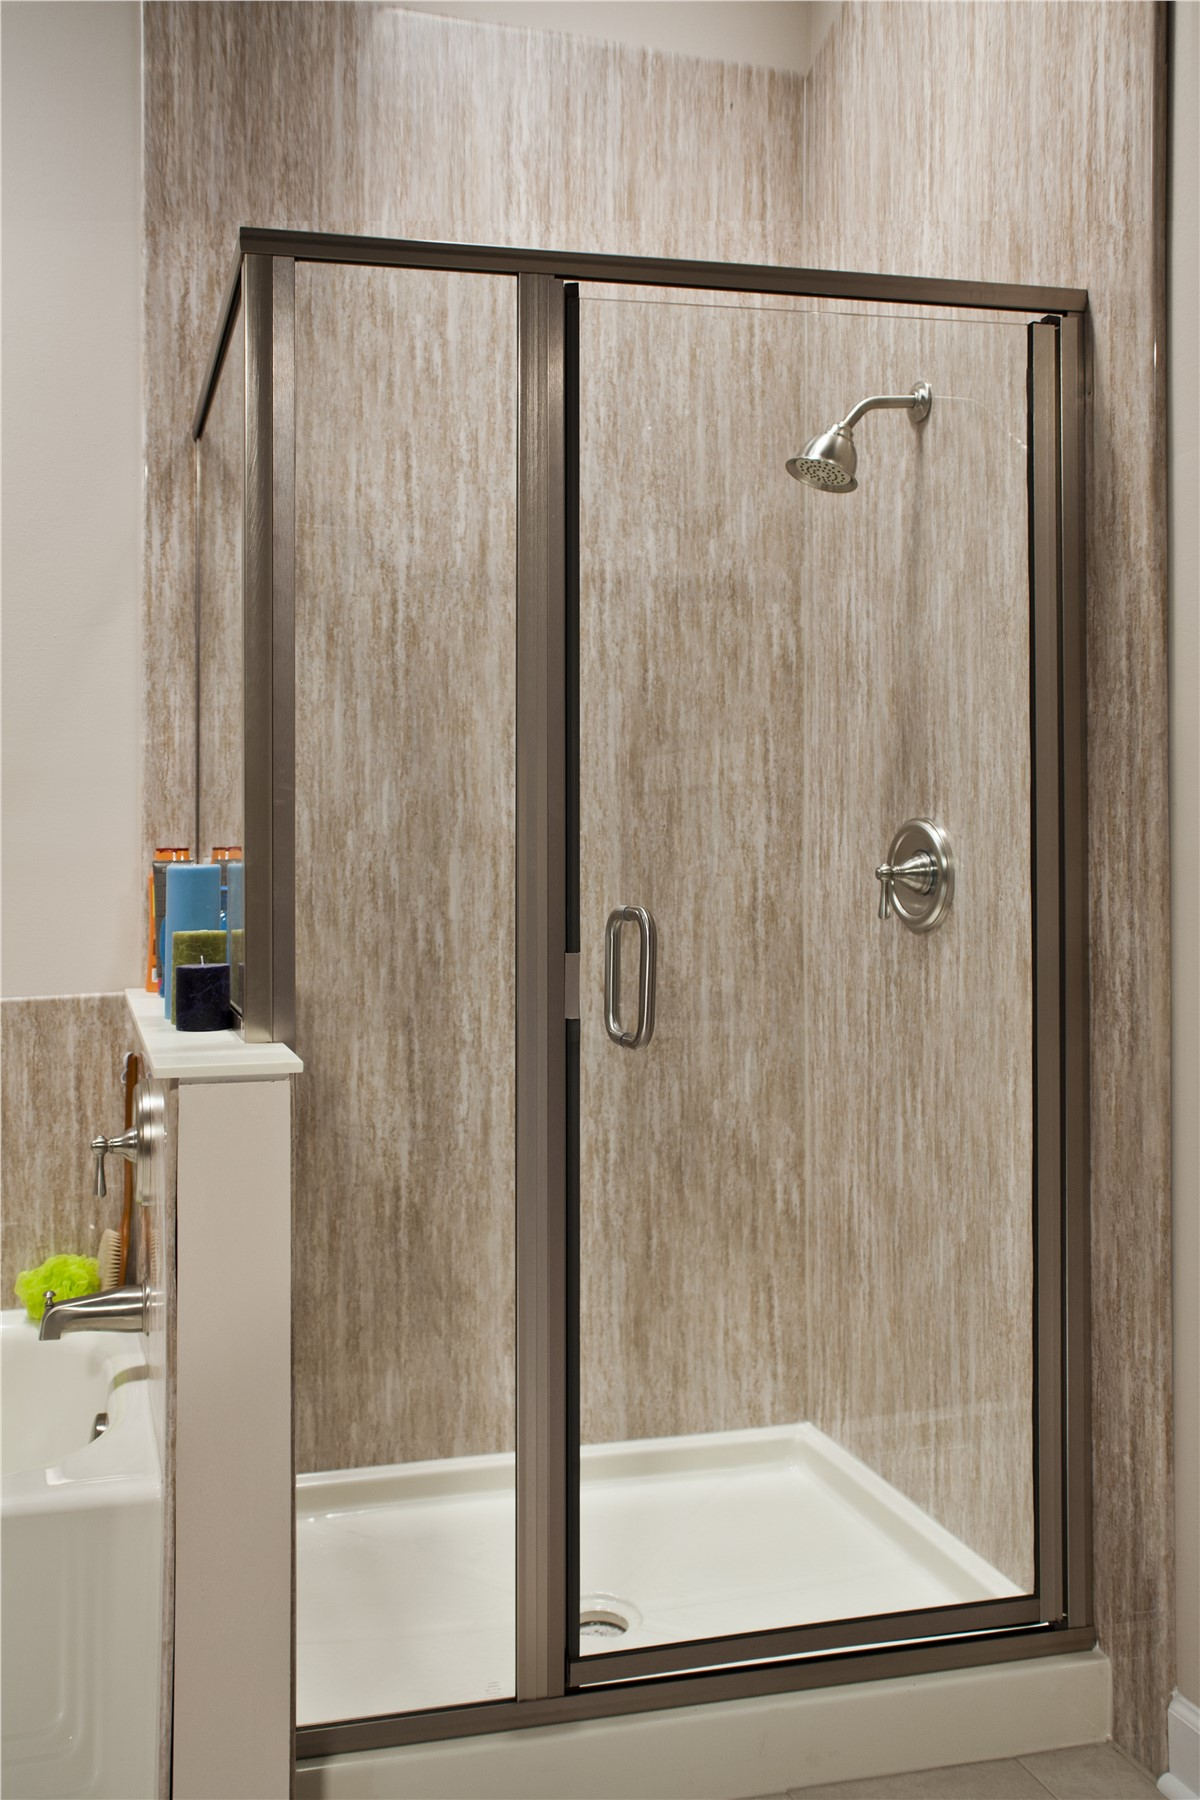 Shower enclosures shower enclosure company yhic for Bathroom shower stall replacement